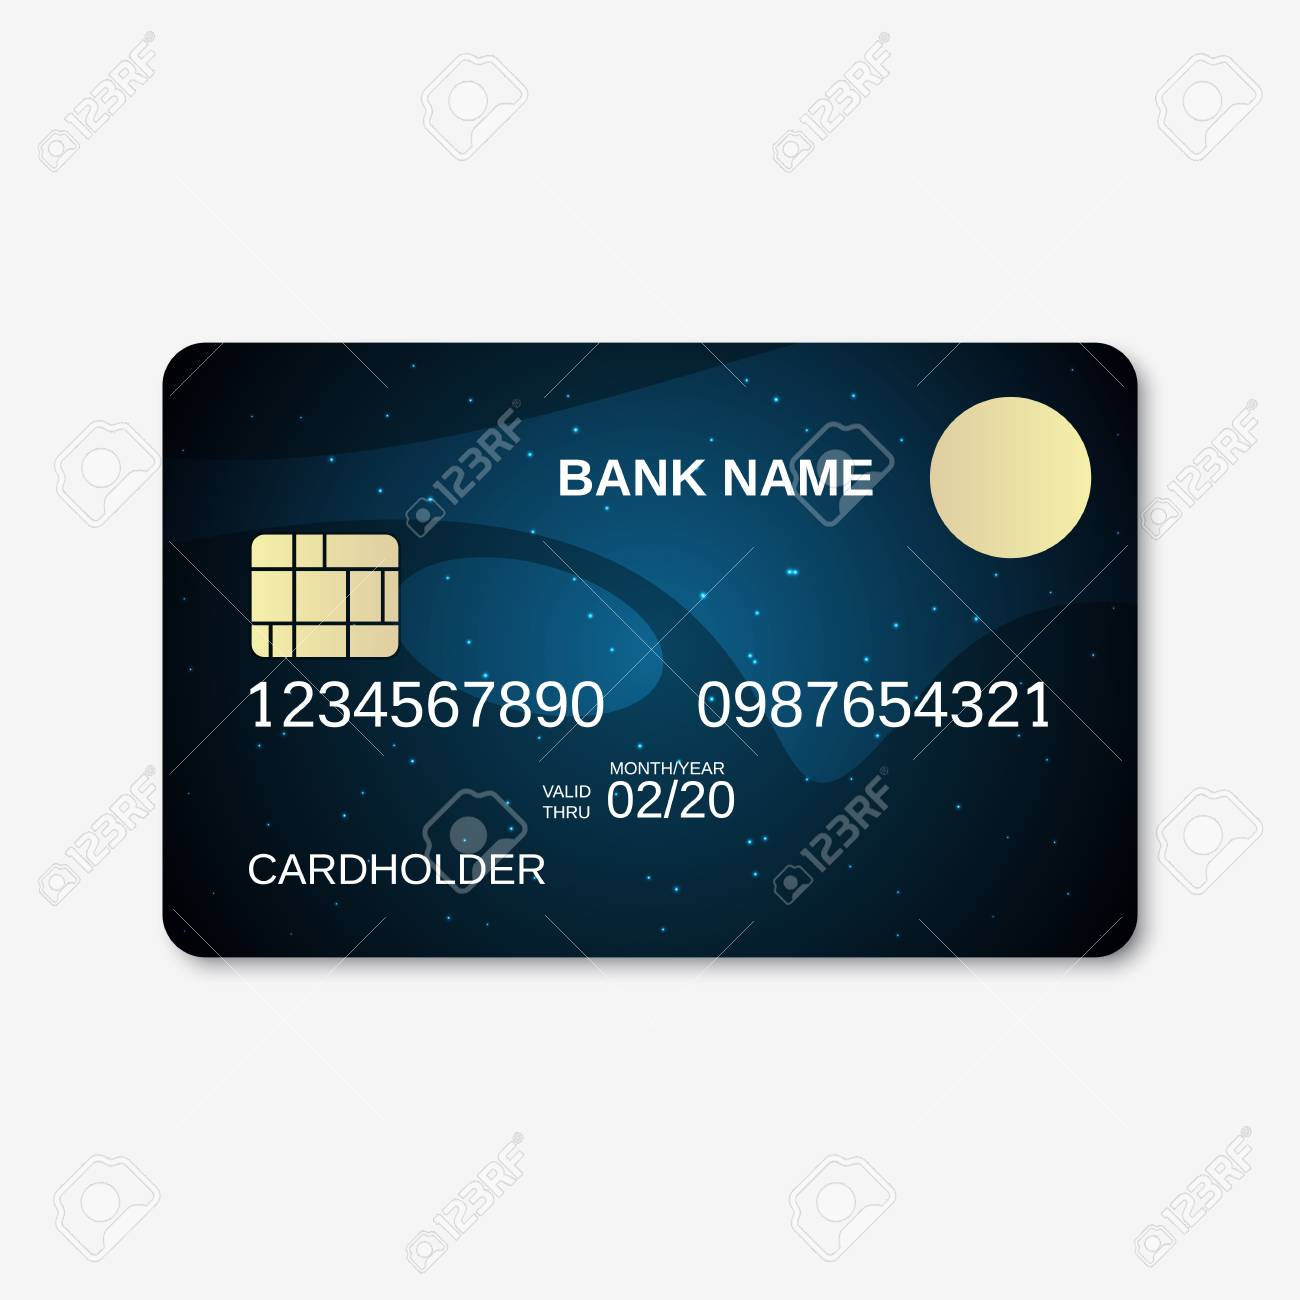 bank card credit card design template stock vector 51663022